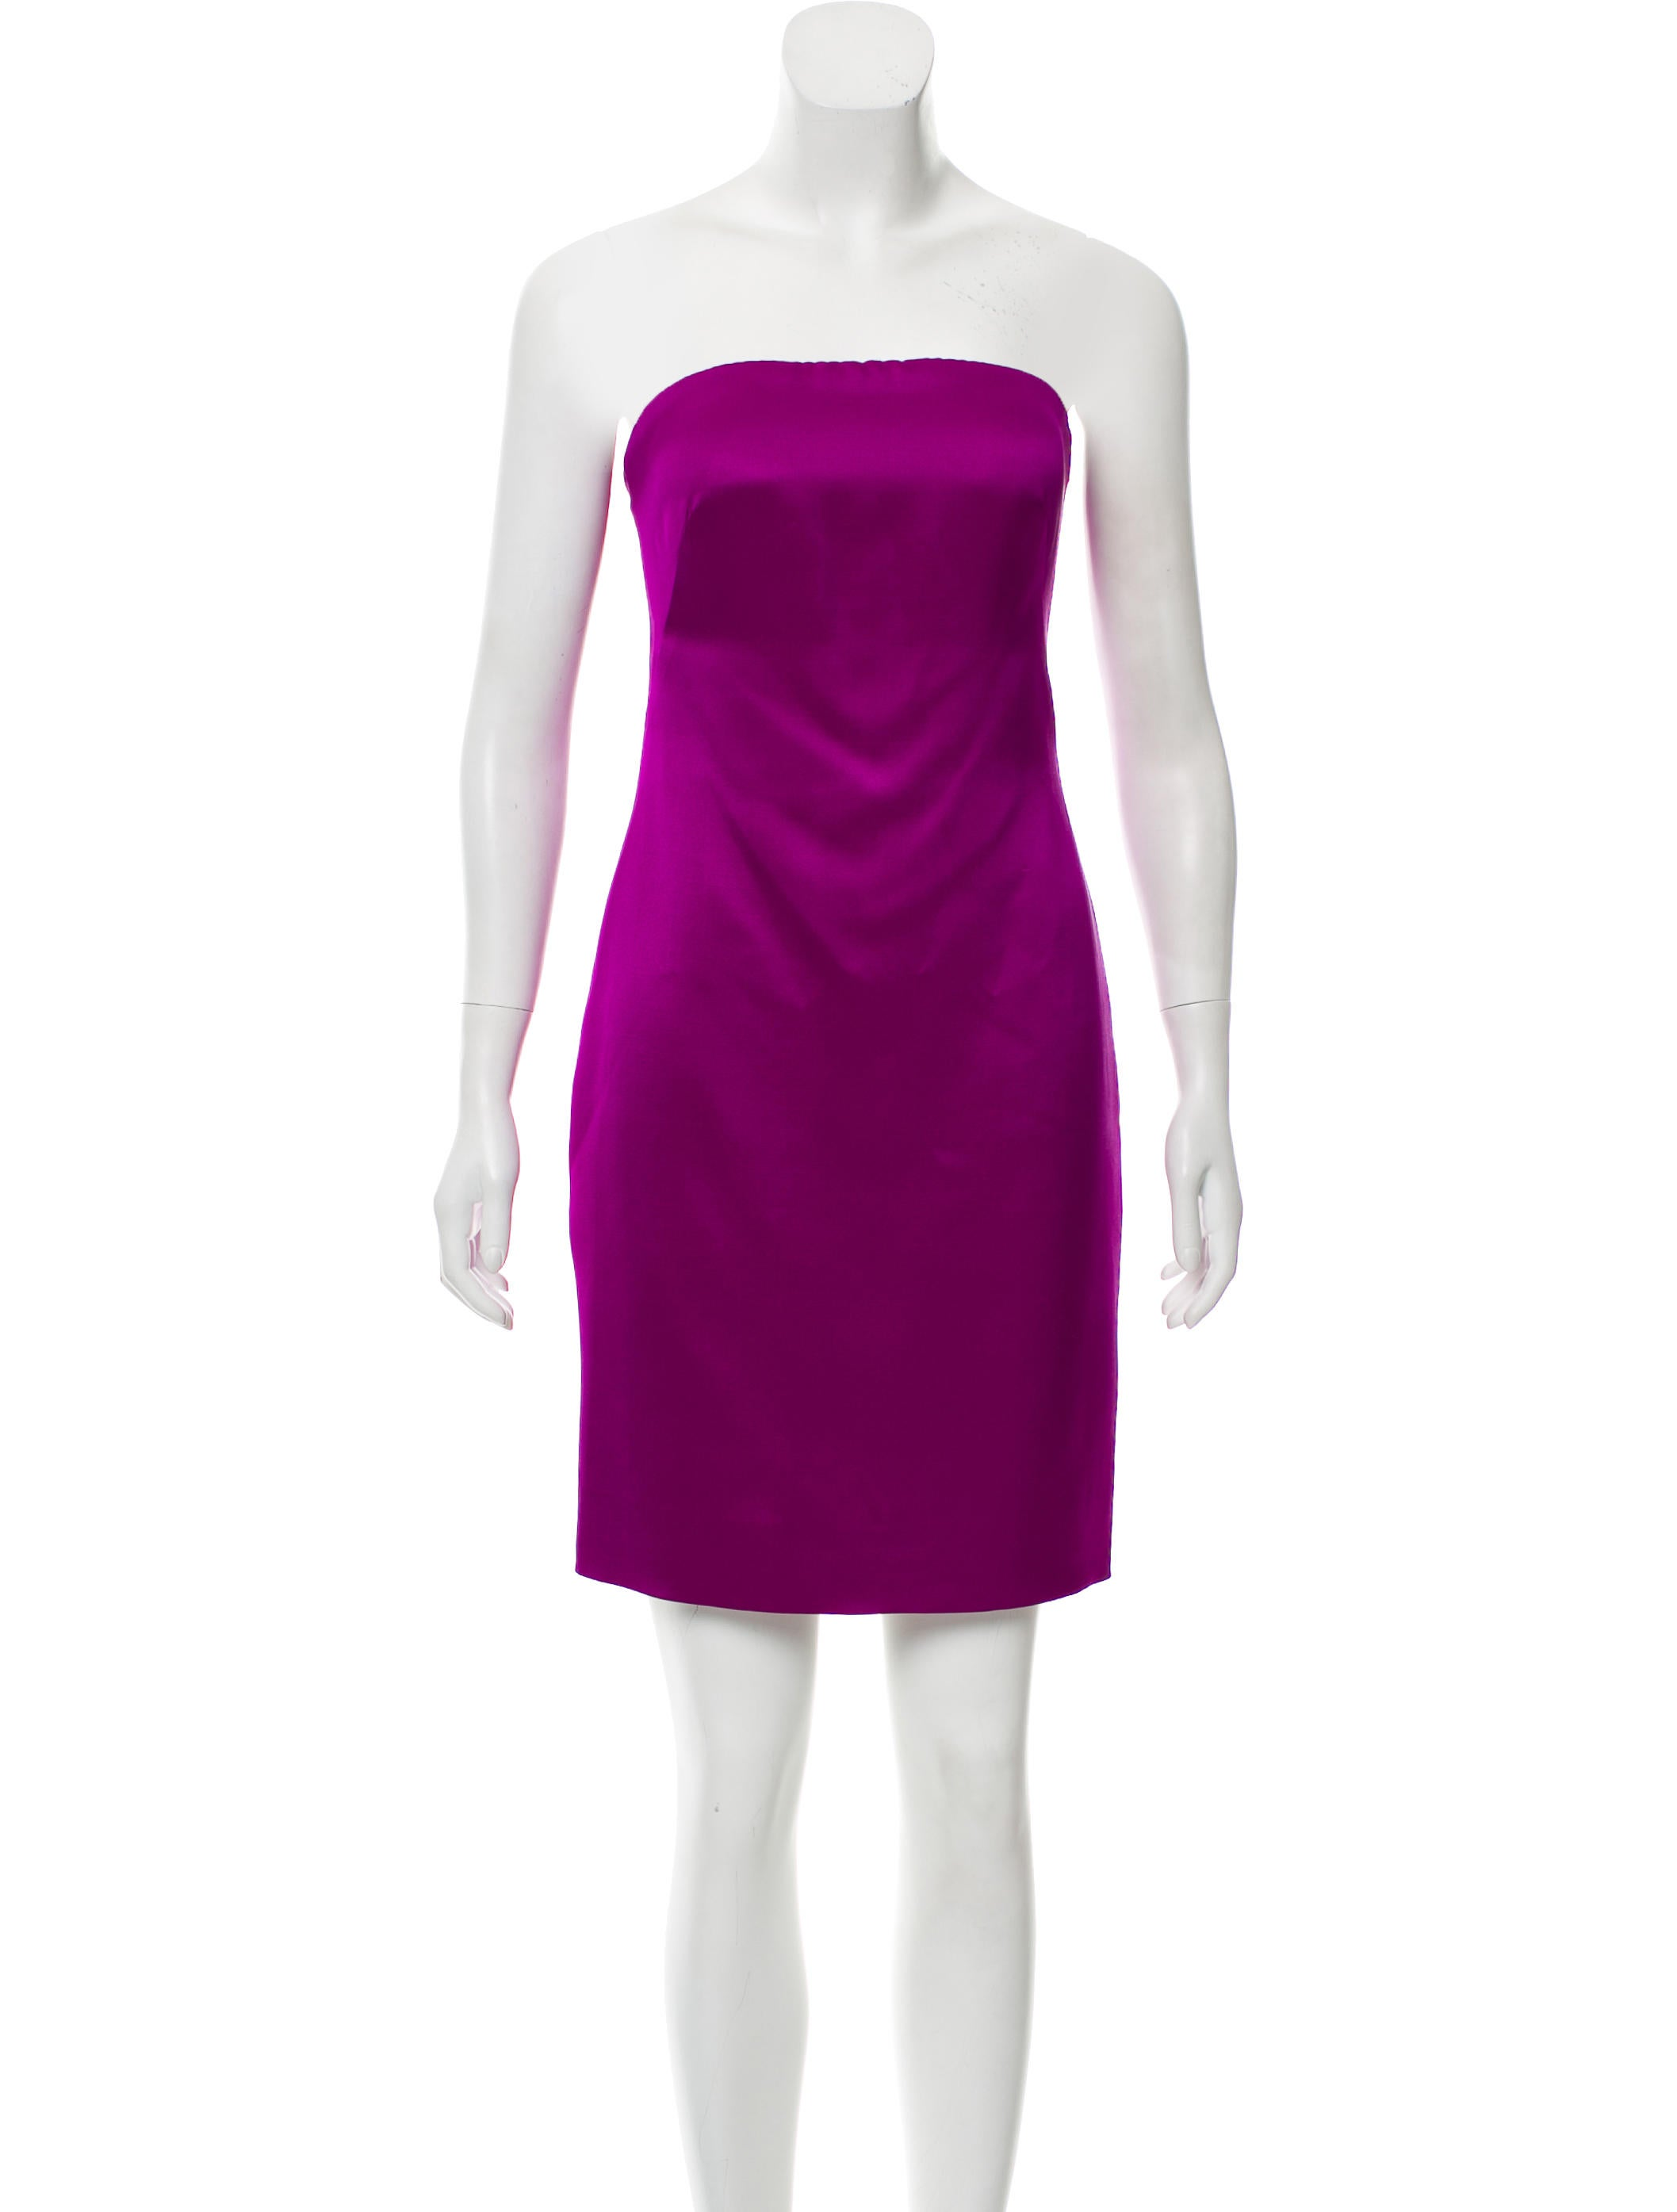 857b08ae499 Ralph Lauren Collection Strapless Satin Dress - Clothing - RAL23917 ...